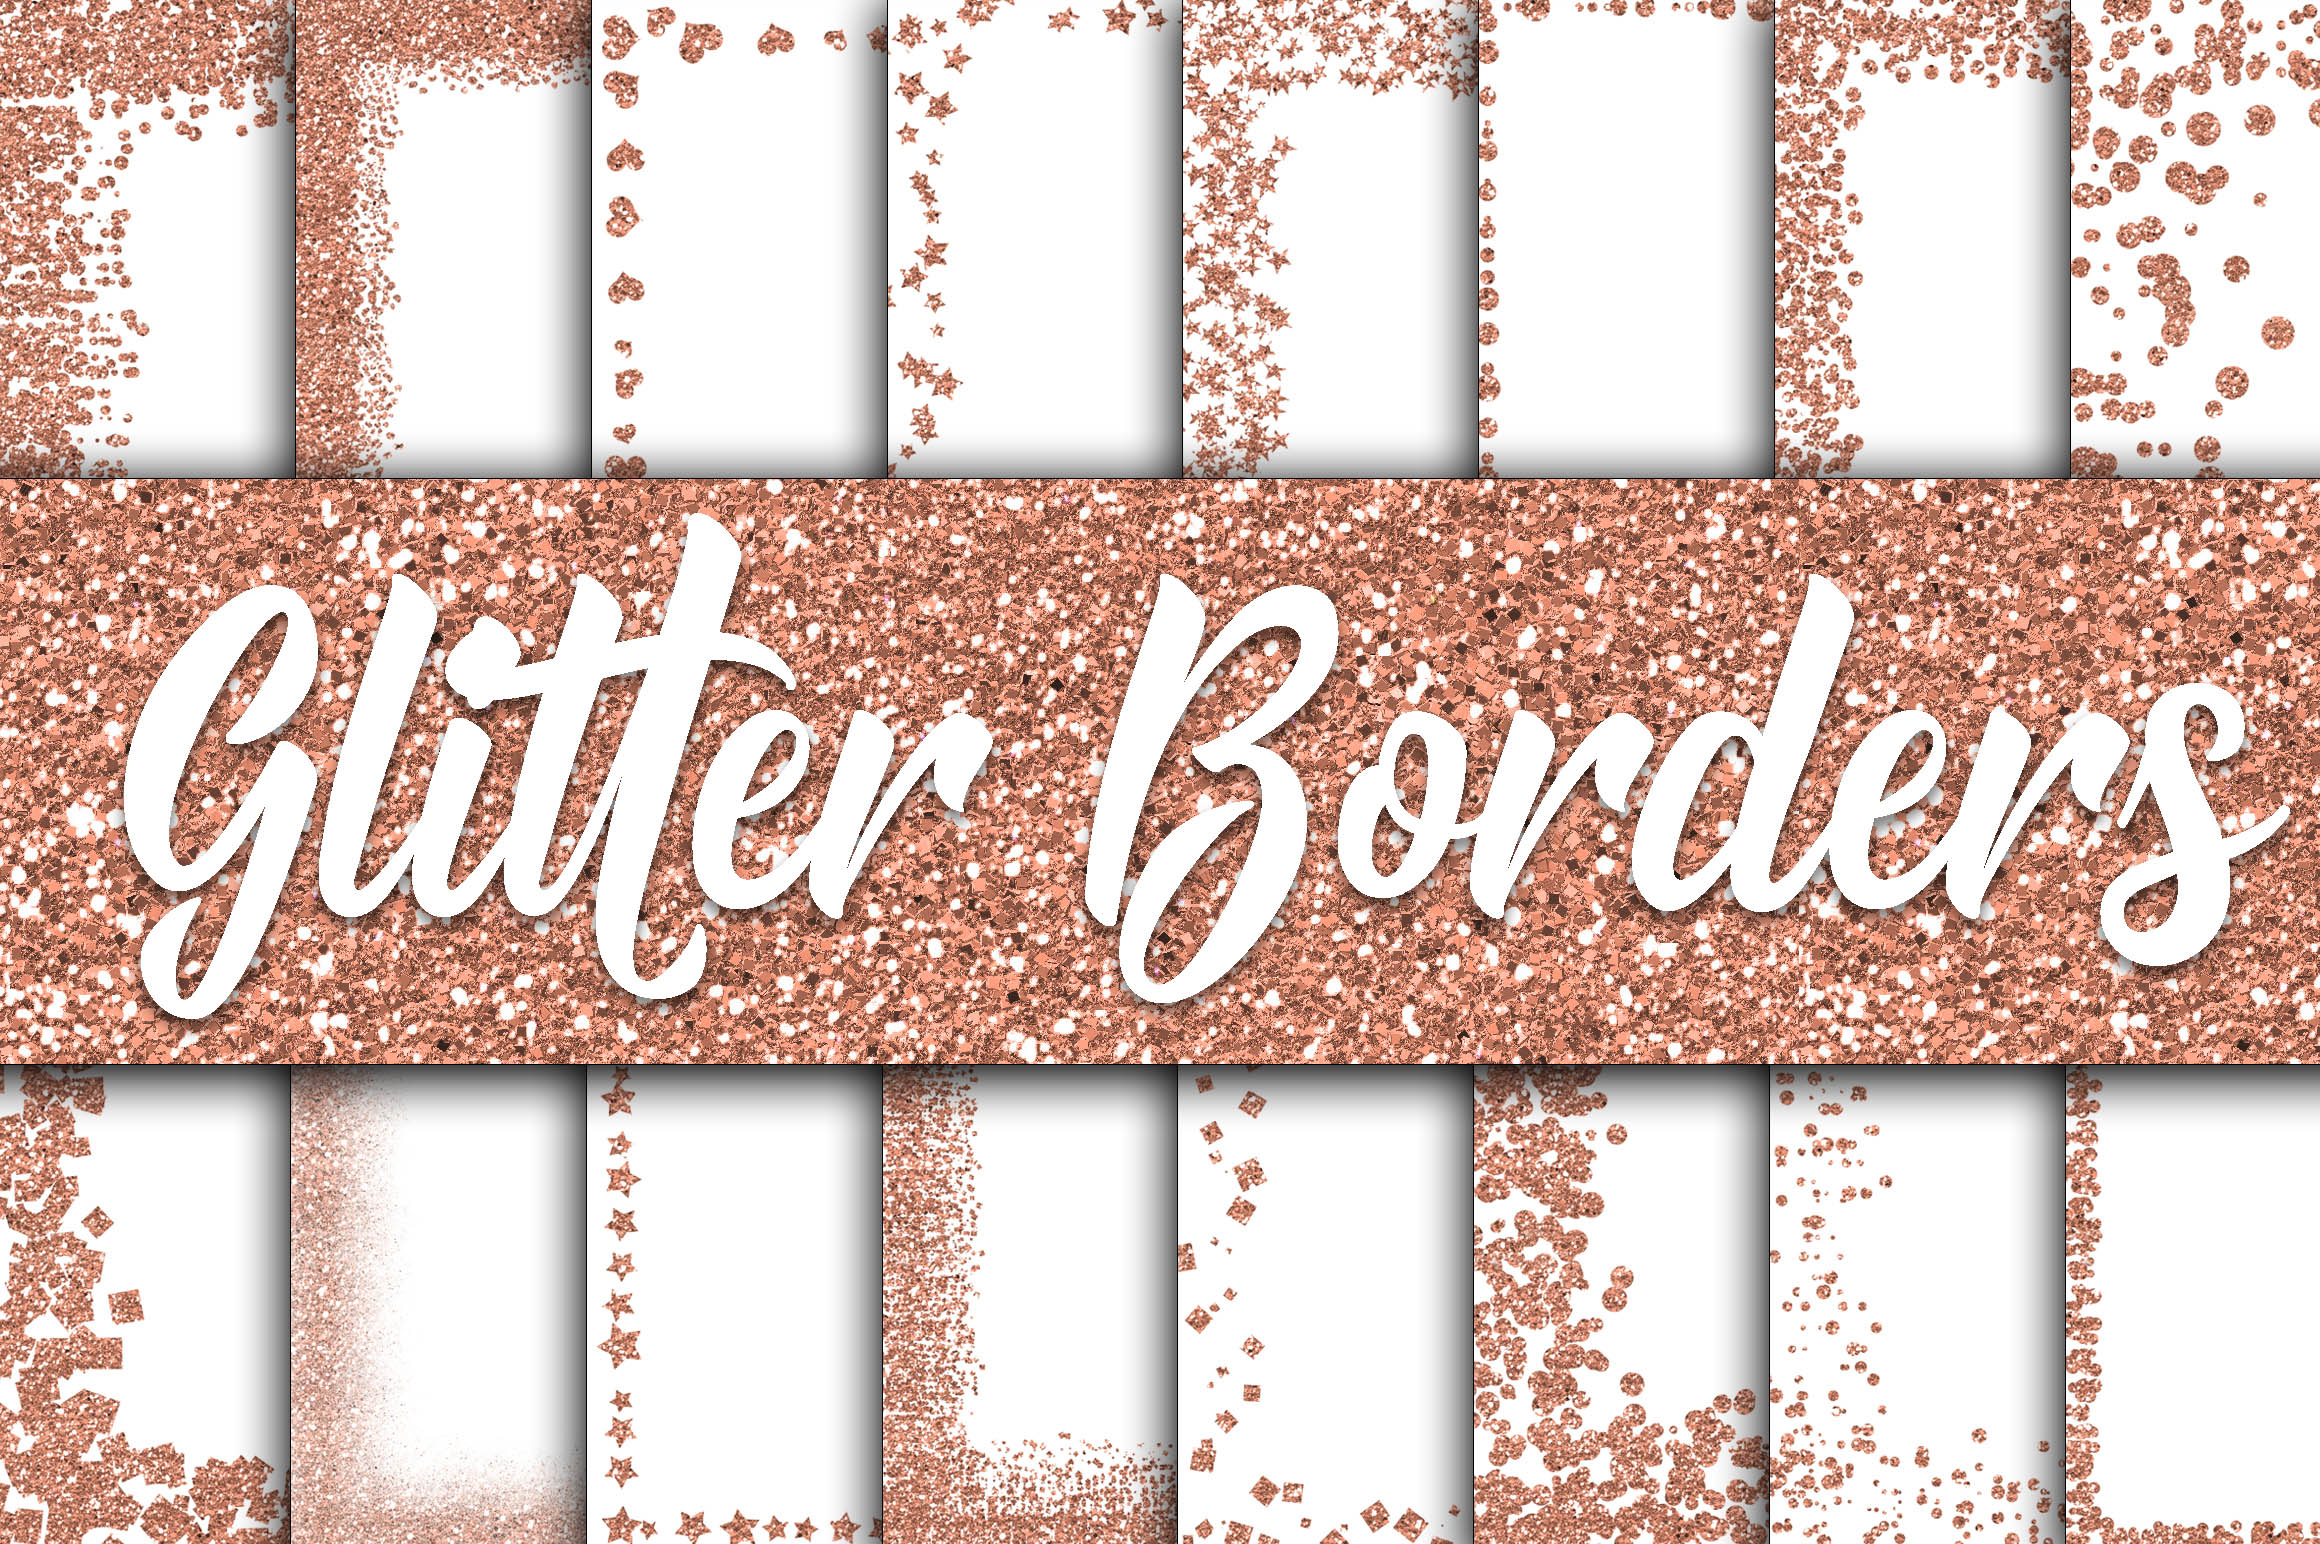 Rose Gold Glitter Borders Digital Paper Graphic By oldmarketdesigns Image 1